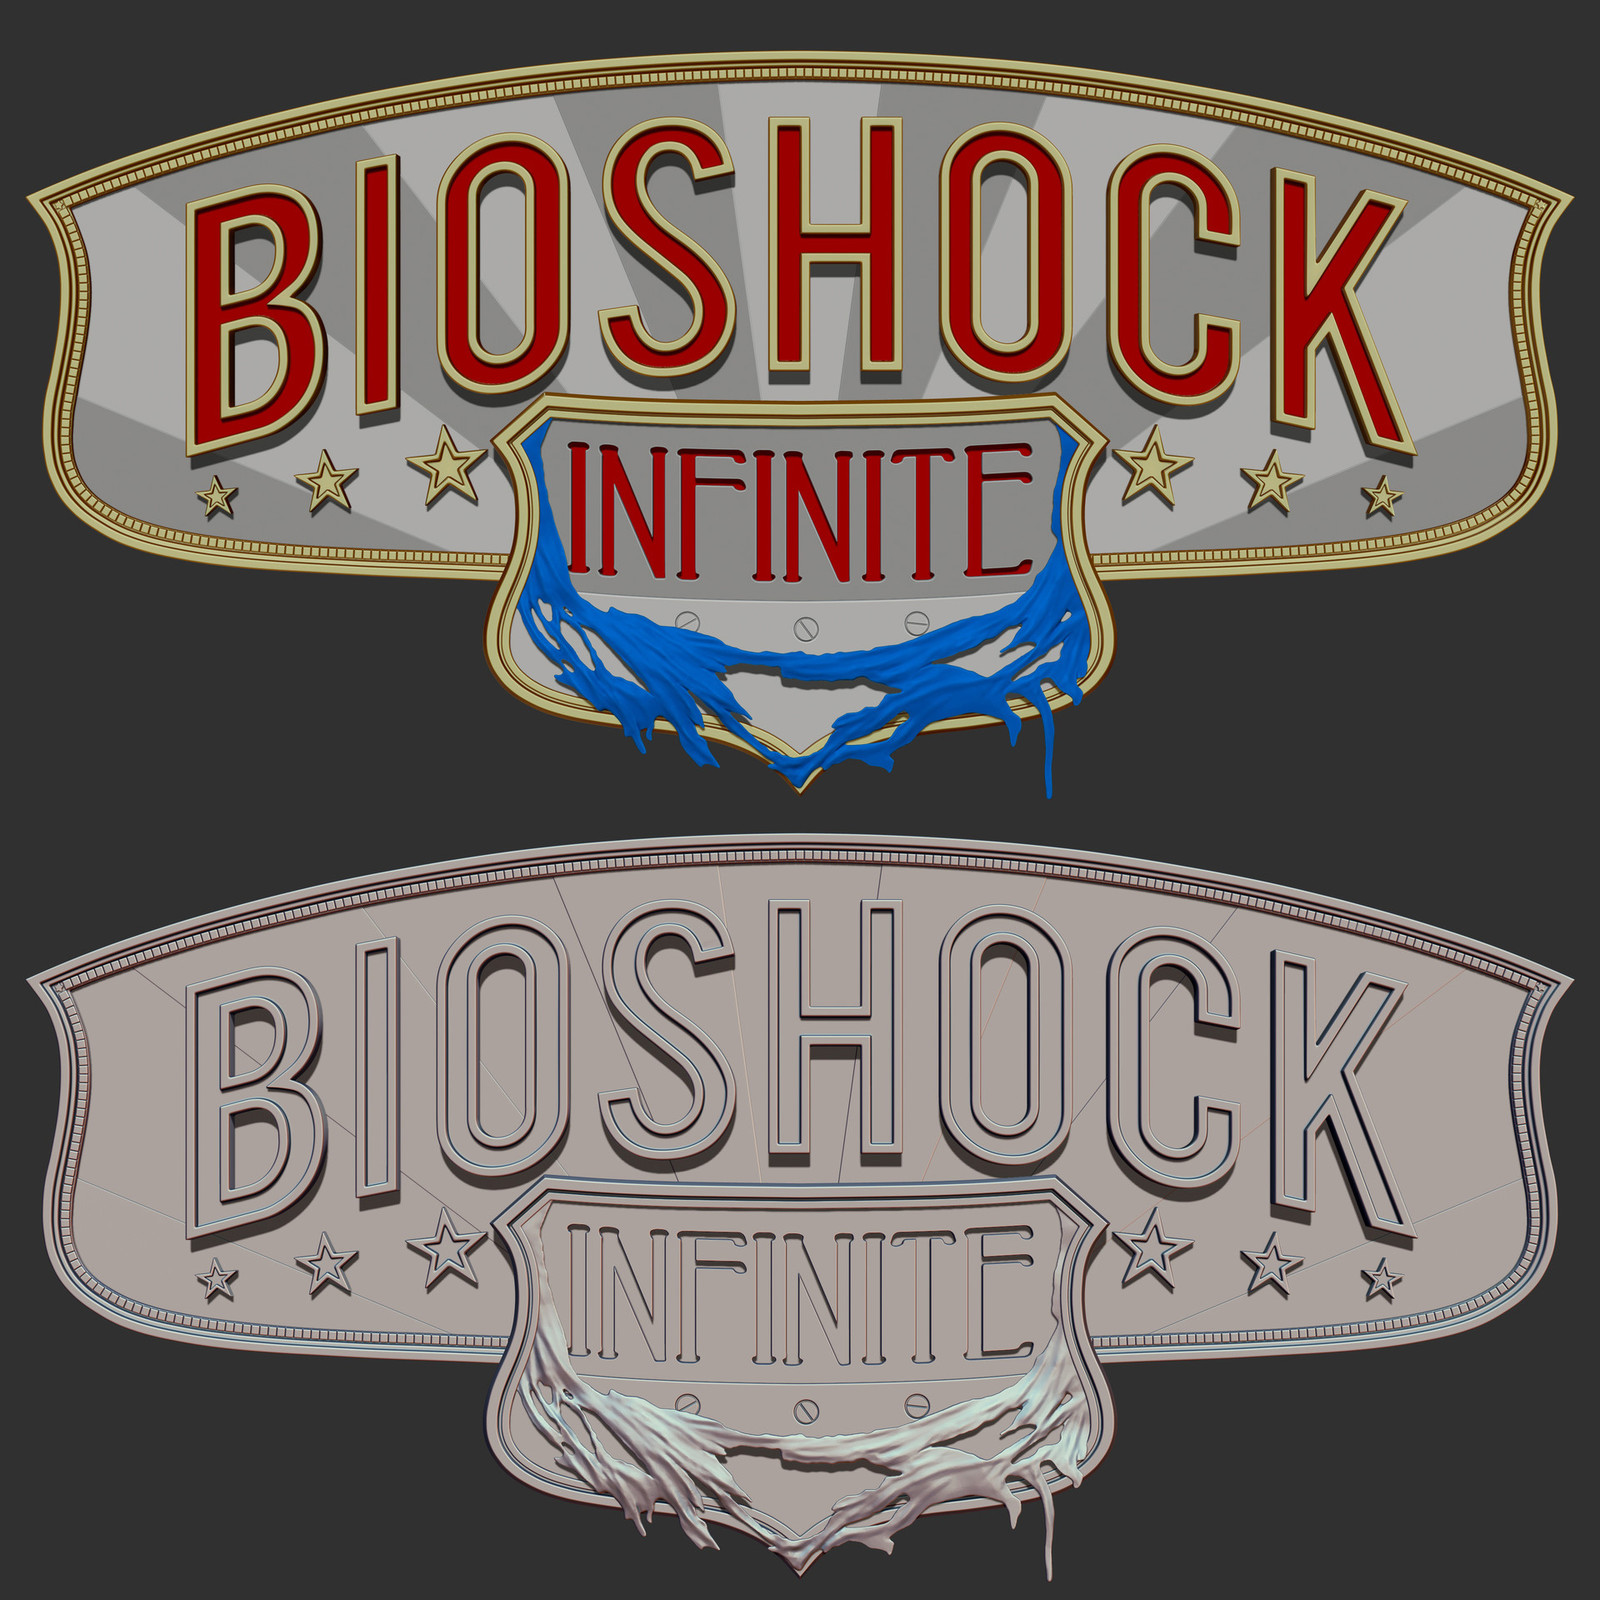 Bioshock: The Collection - Bioshock Infinite Logo (Not Published)